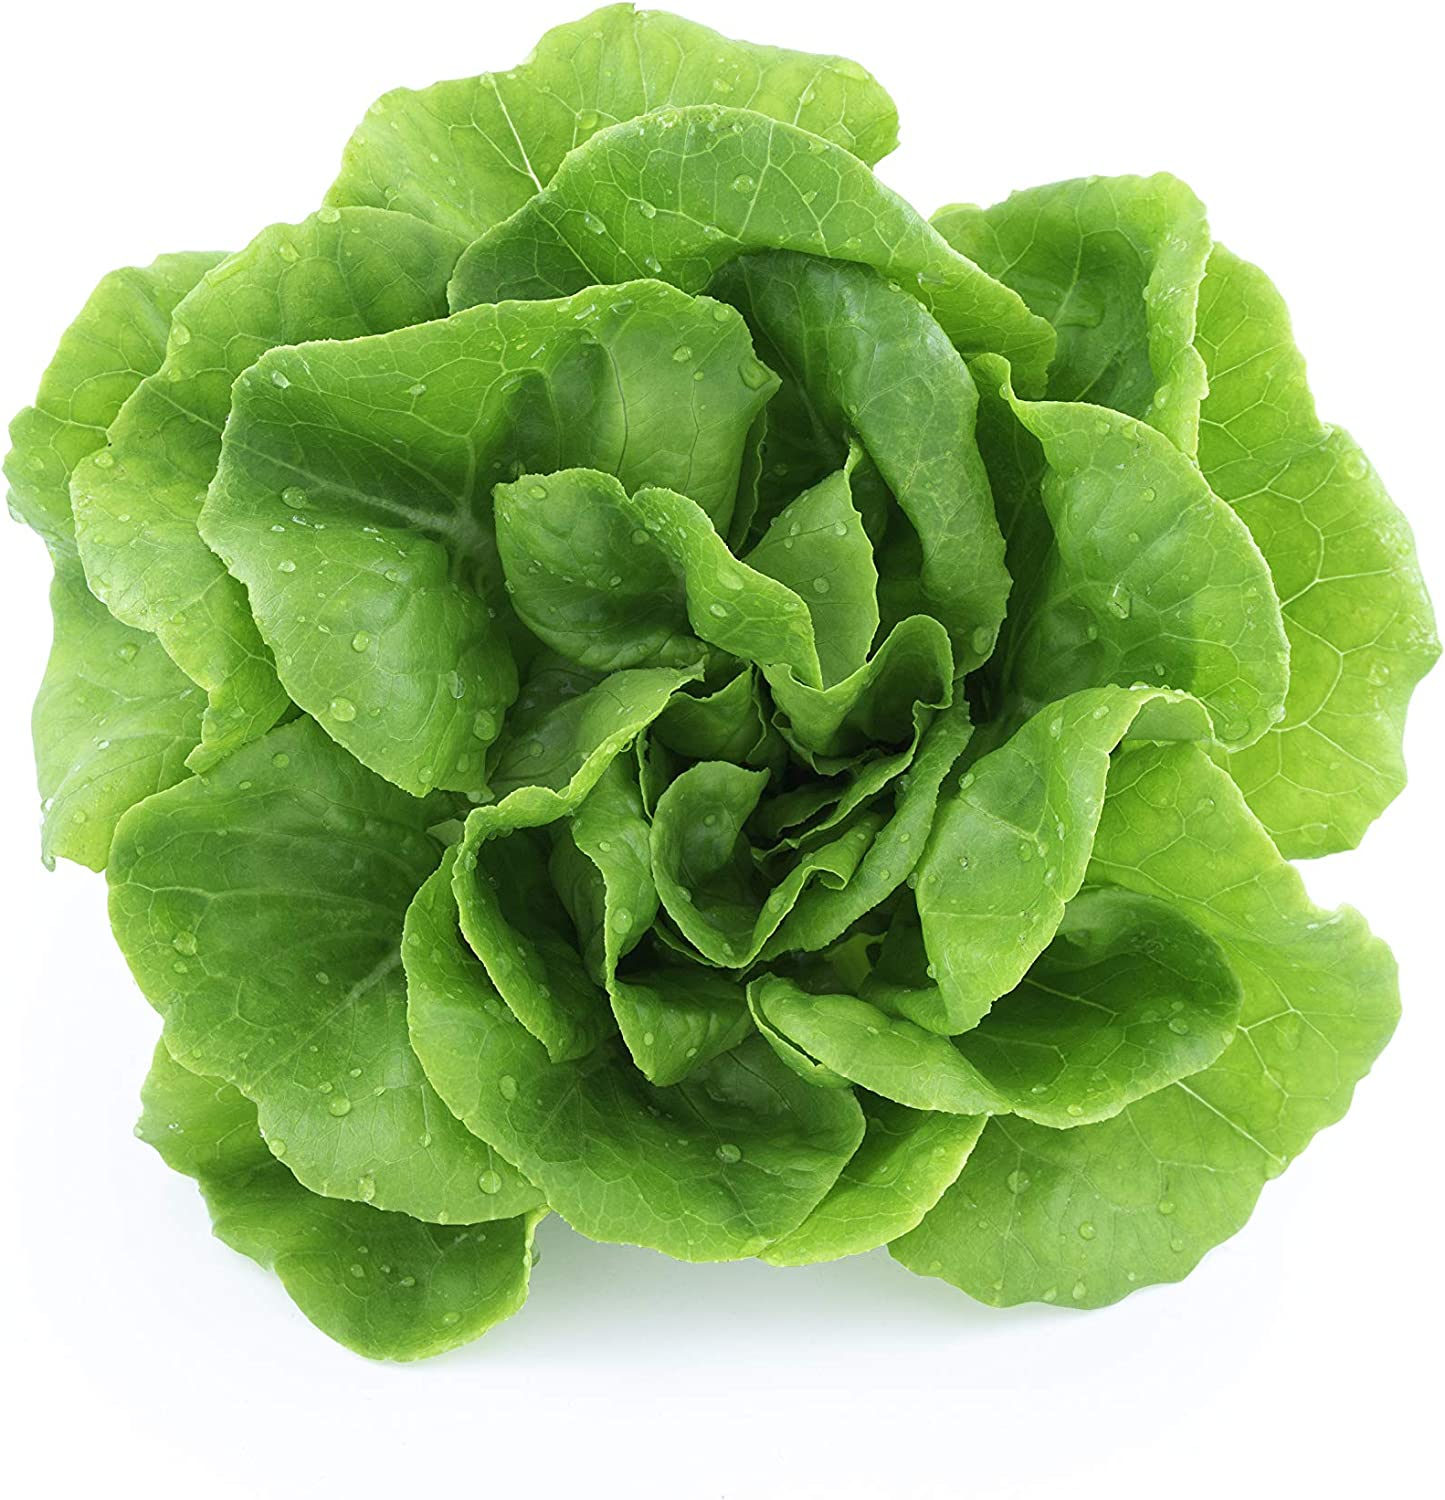 Lettuce Seeds for Planting Home Garden - Hydroponics Garden - Fall Planting Indoors or Outdoors - Tom Thumb!